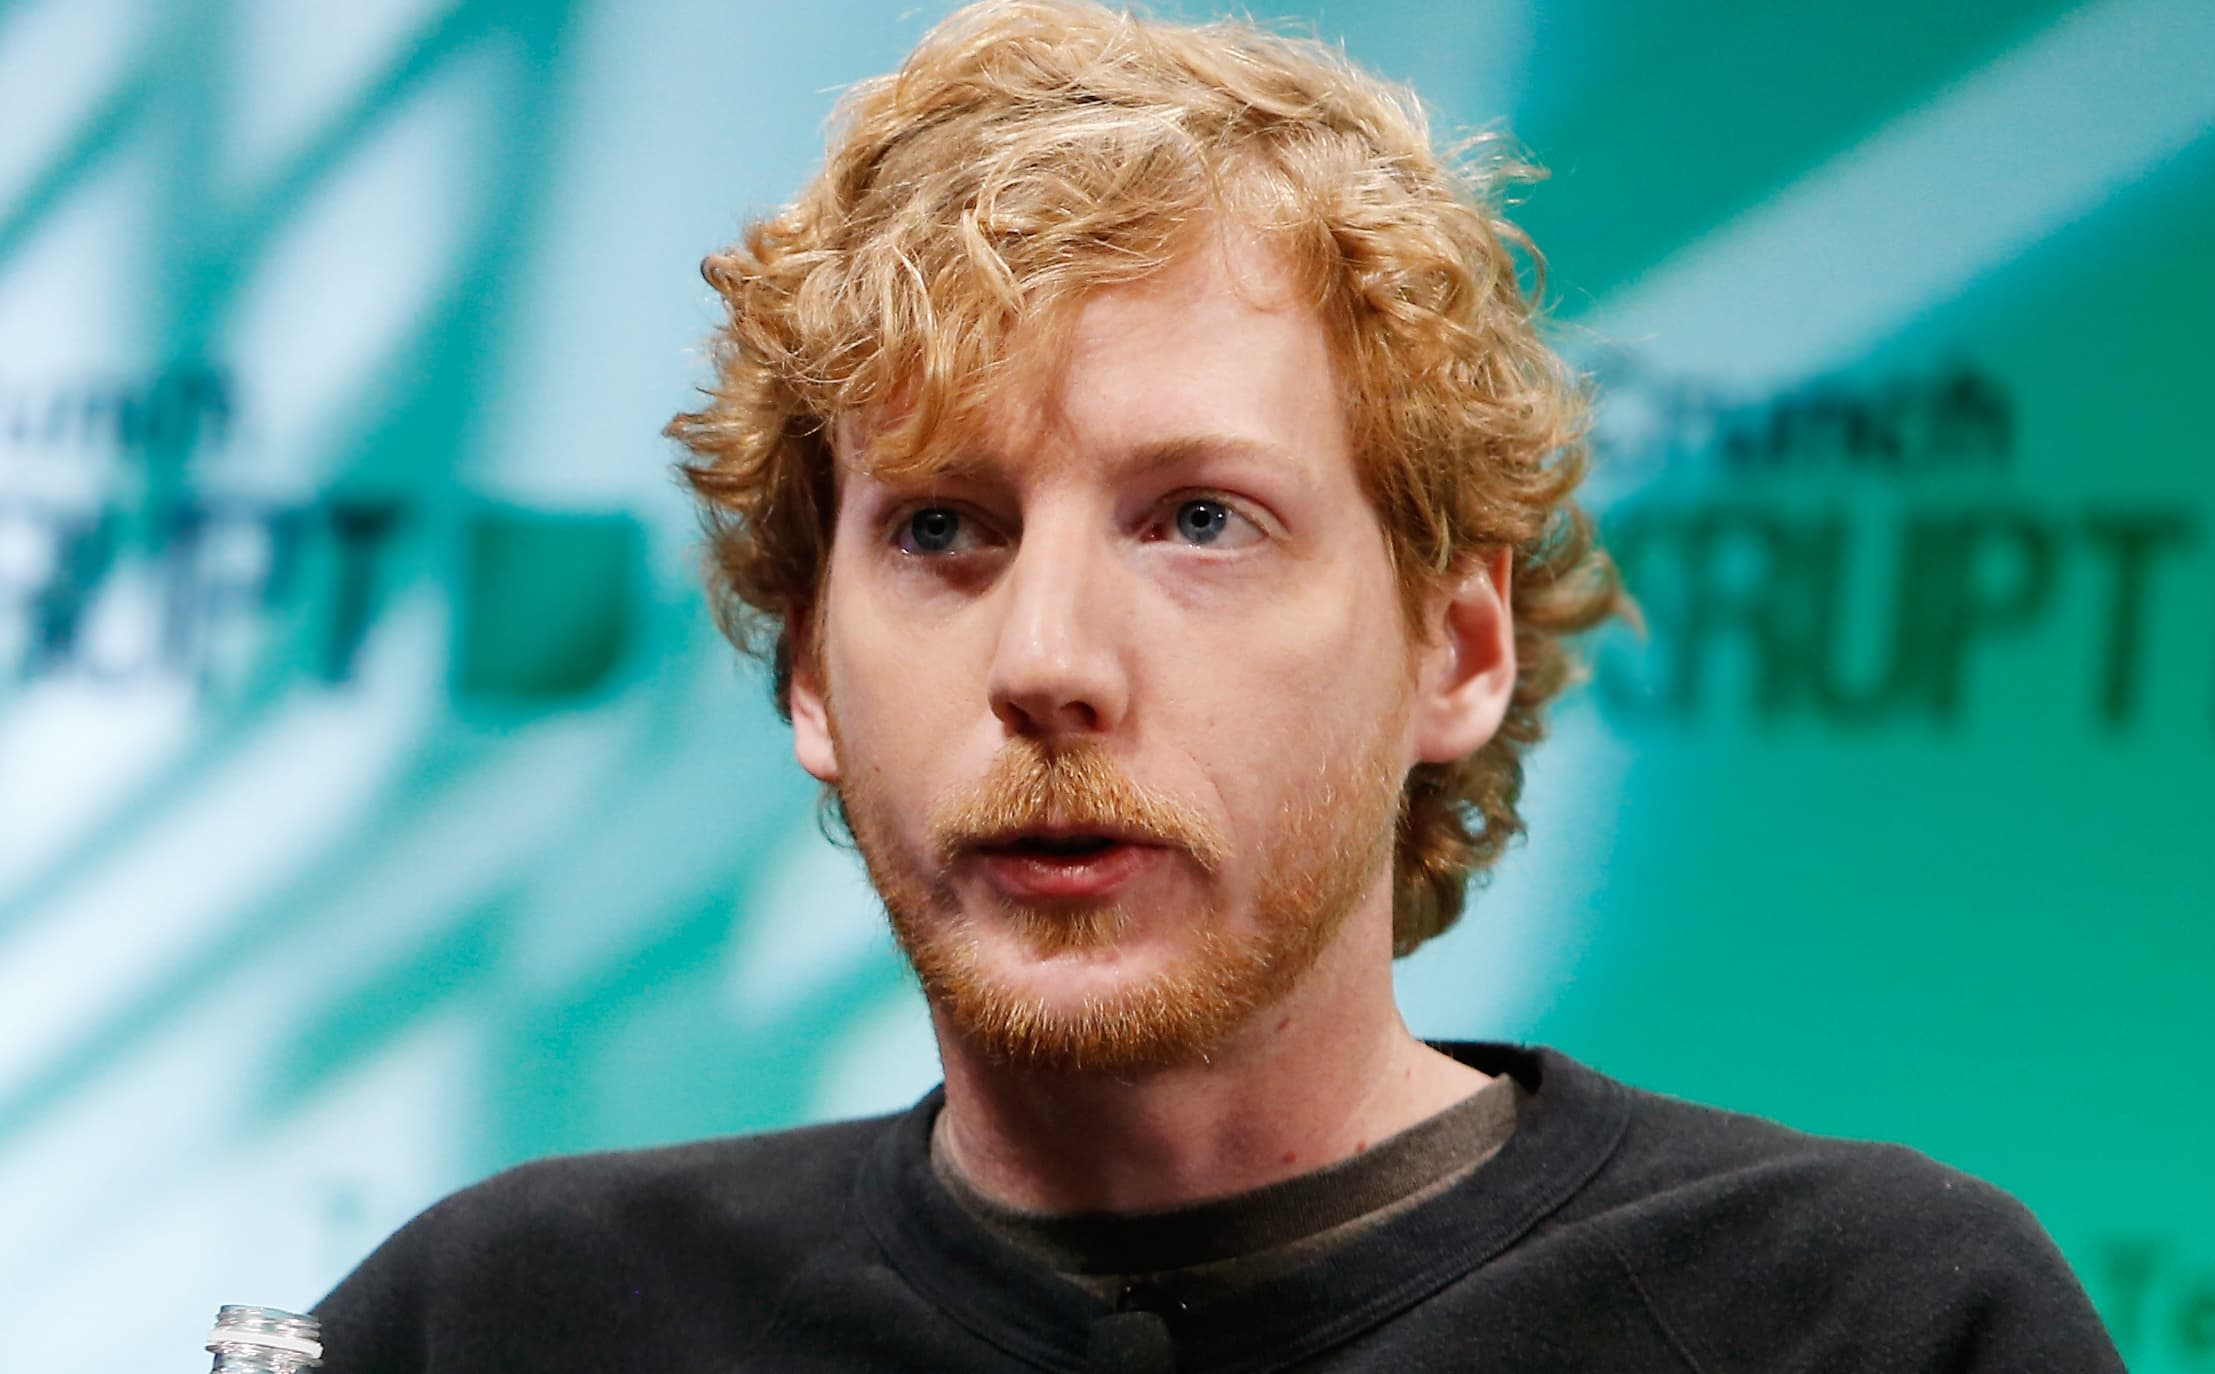 Microsoft to buy GitHub, a platform for software developers, for $7.5 billion in stock